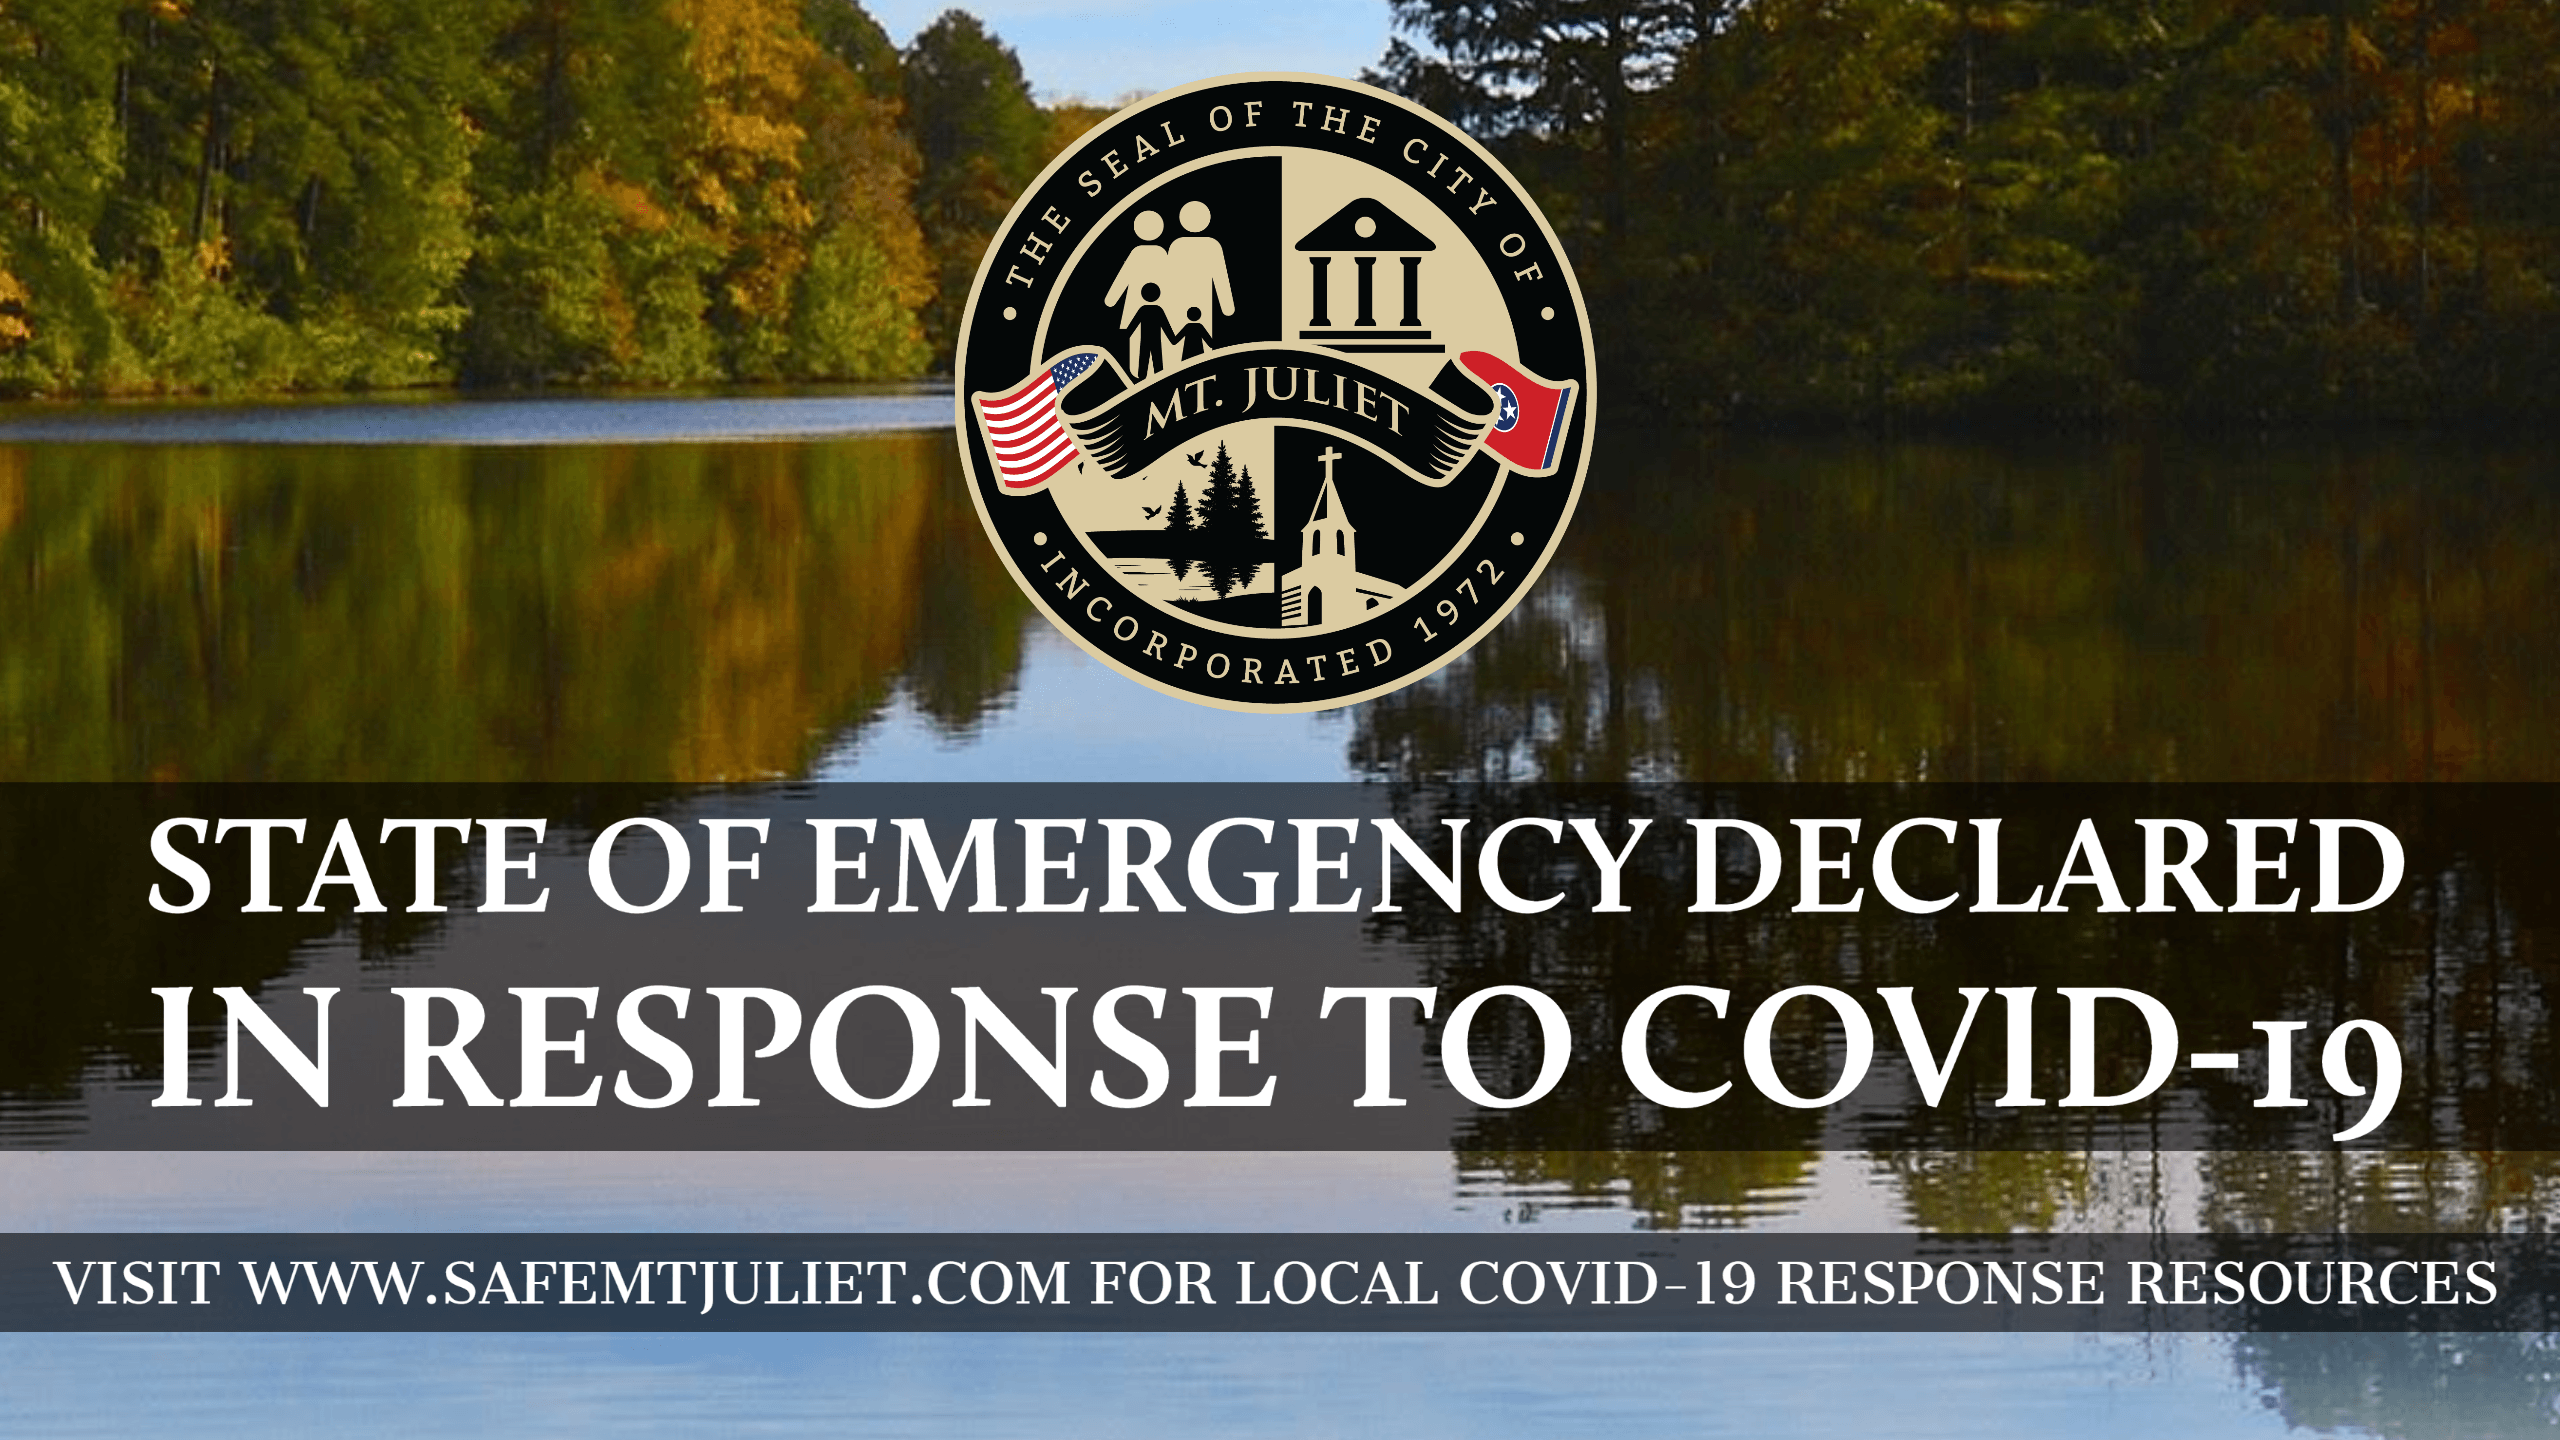 State of Emergency Banner